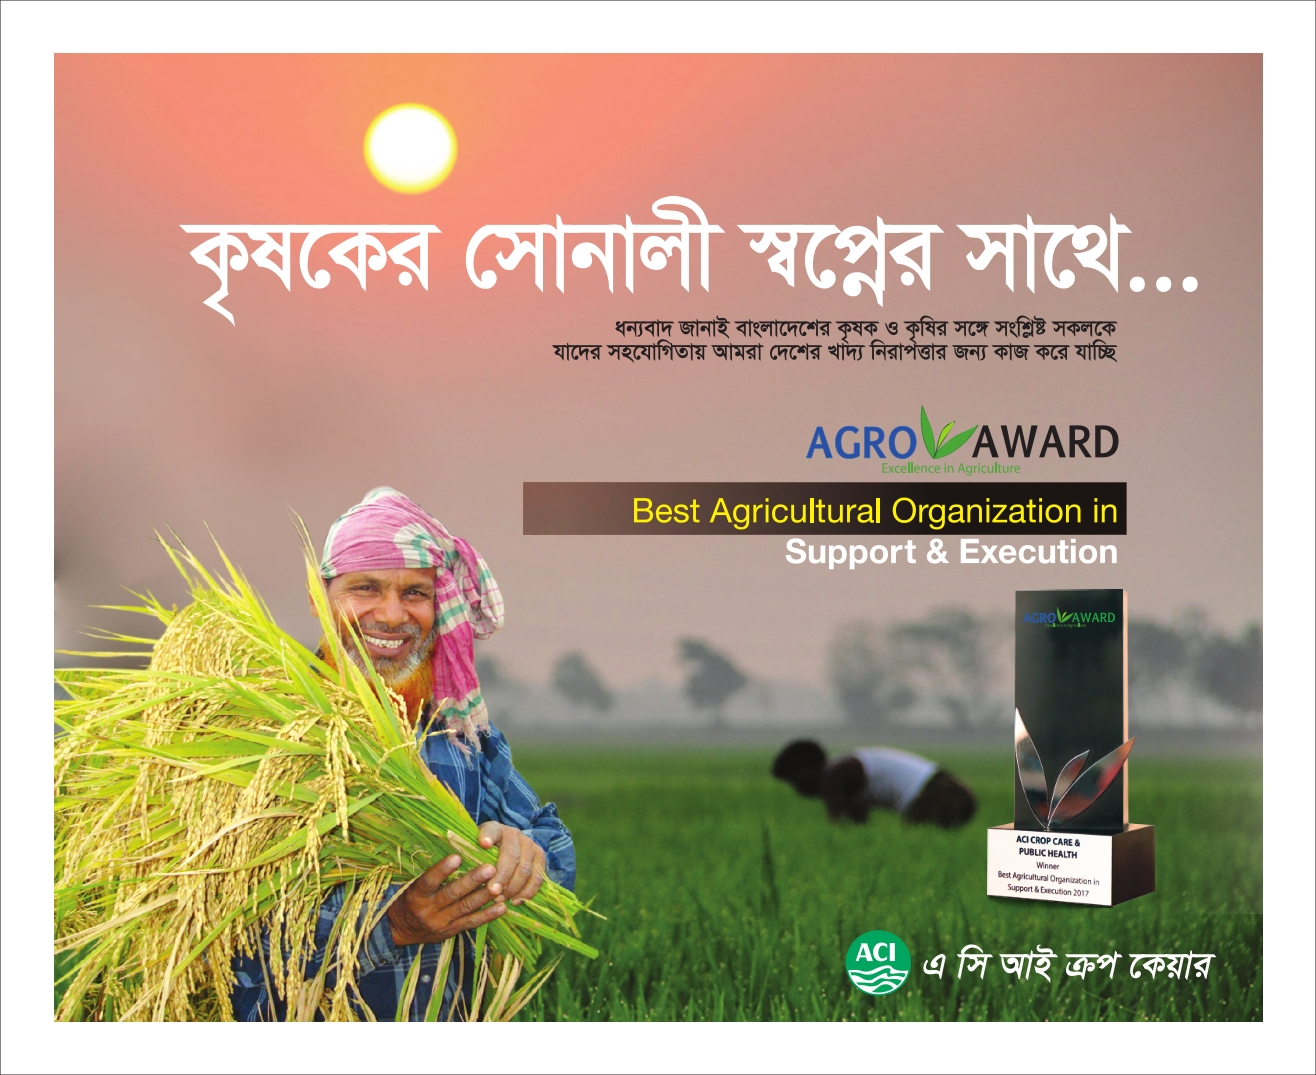 ACI Crop Care Product Brochure